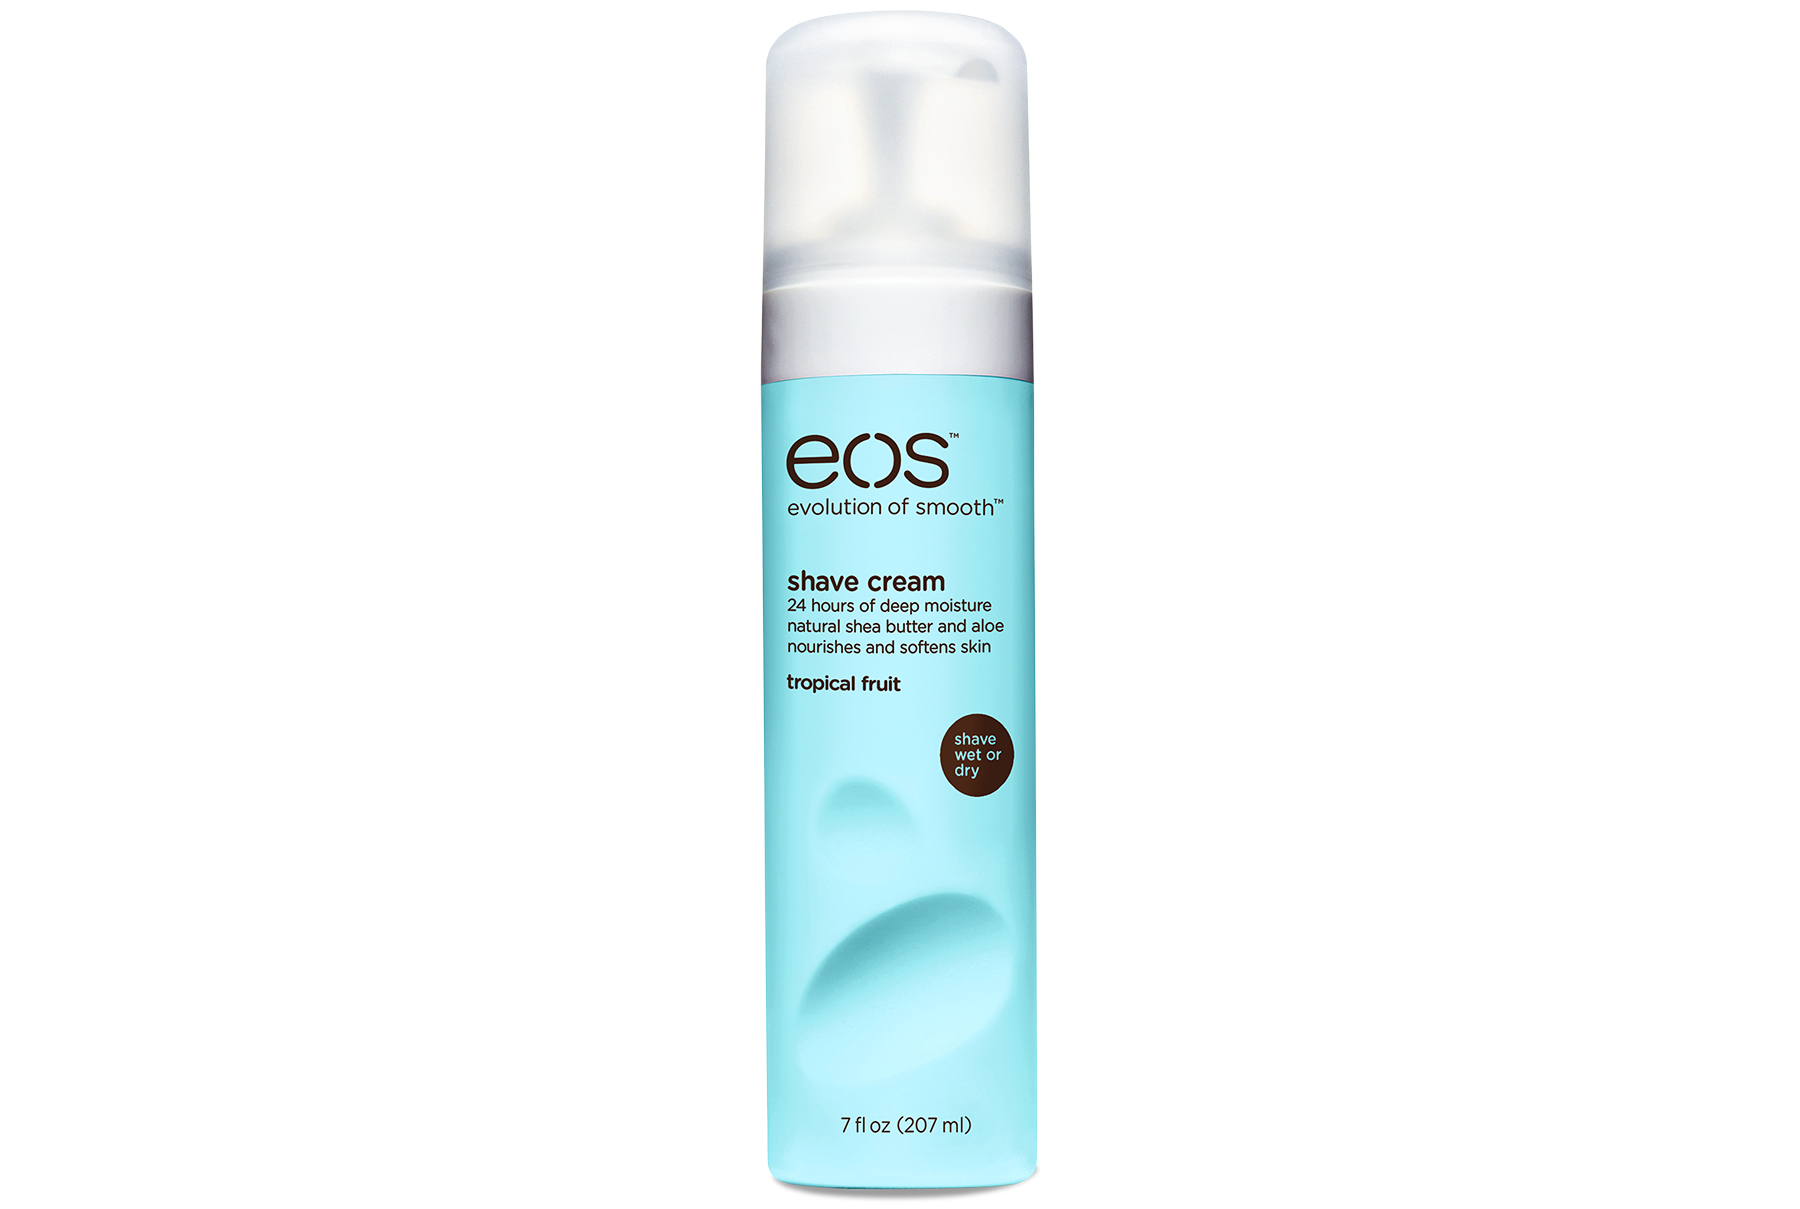 EOS Shave Cream in Tropical Fruit